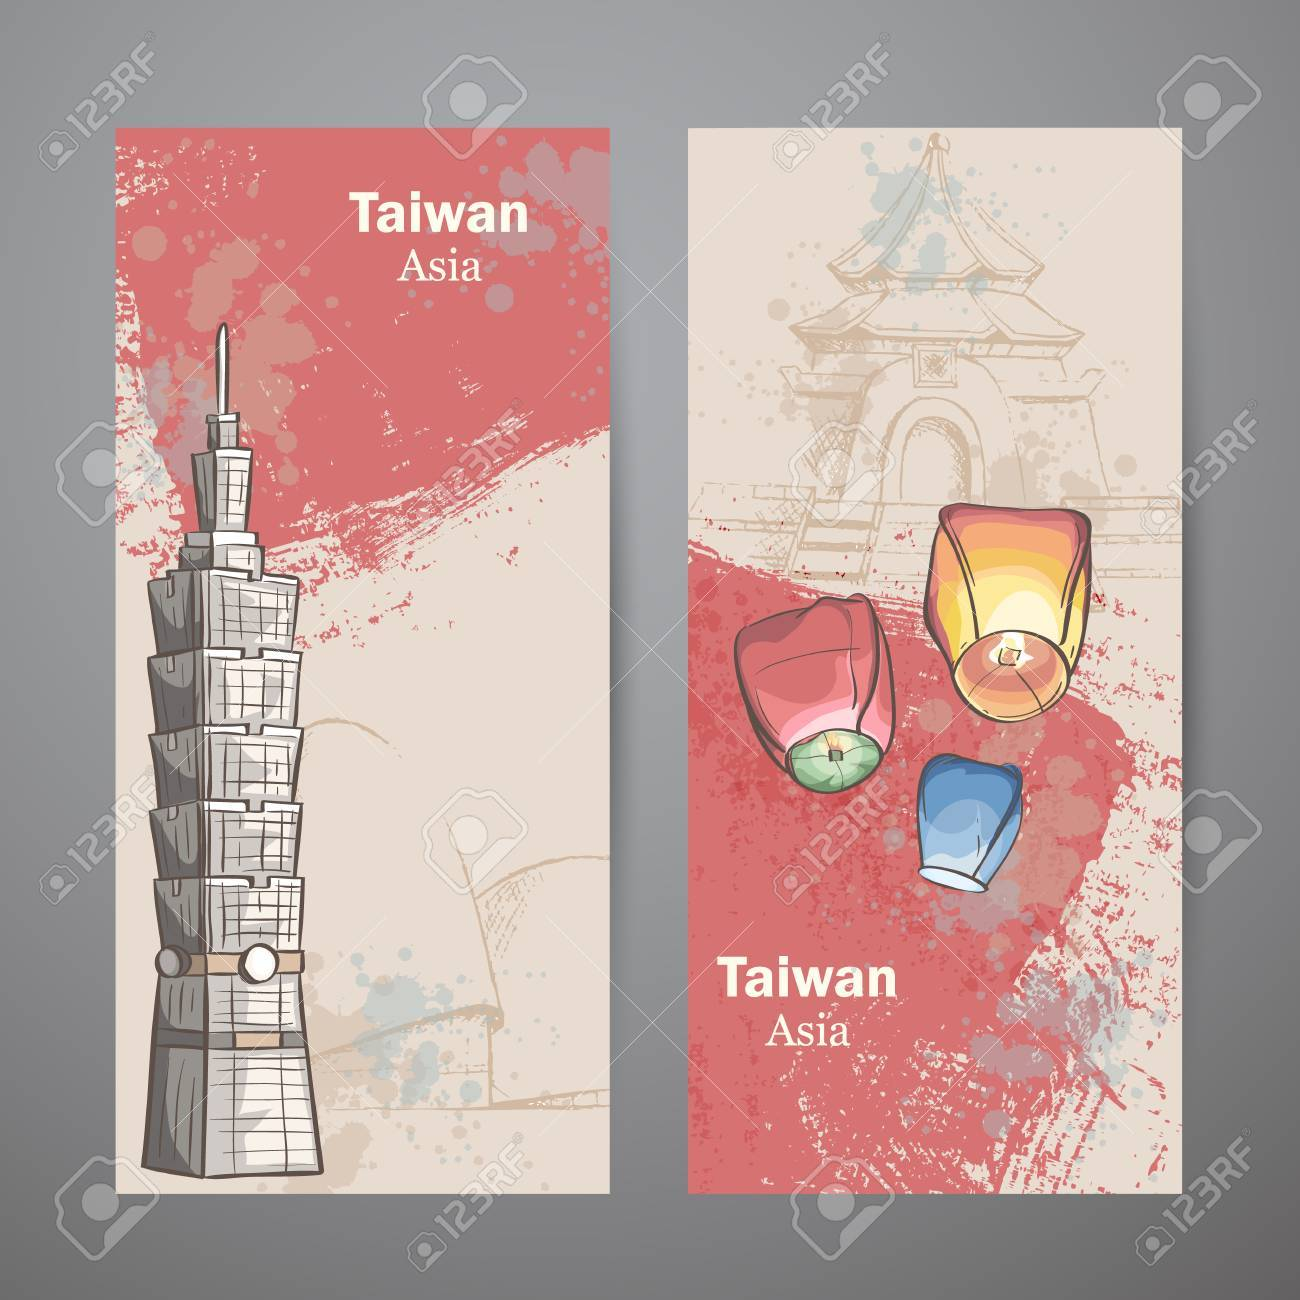 Vertical banner set with a tower and air lanterns Taipei Taiwan. Asia - 41658049